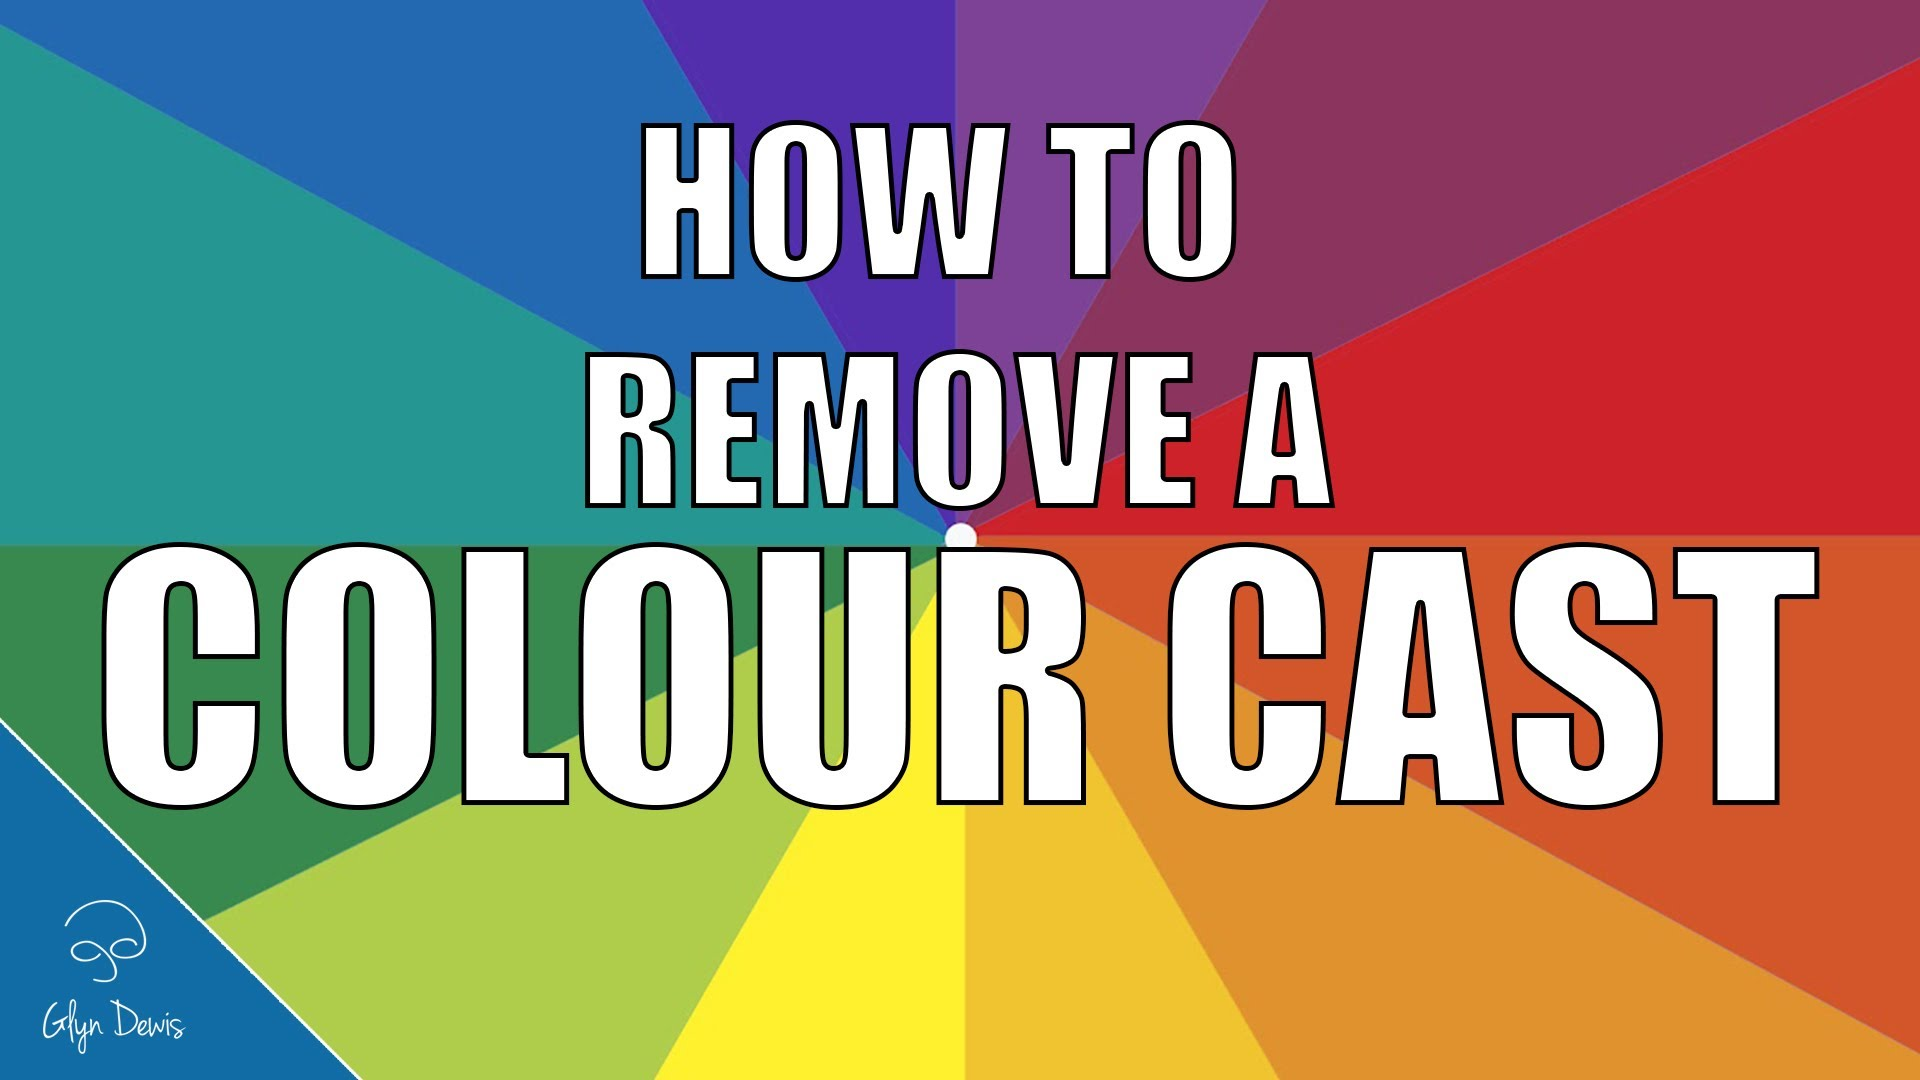 How to fix color cast in photoshop elements - How To Remove A Color Cast From A Picture In Photoshop Lensvid Comlensvid Com